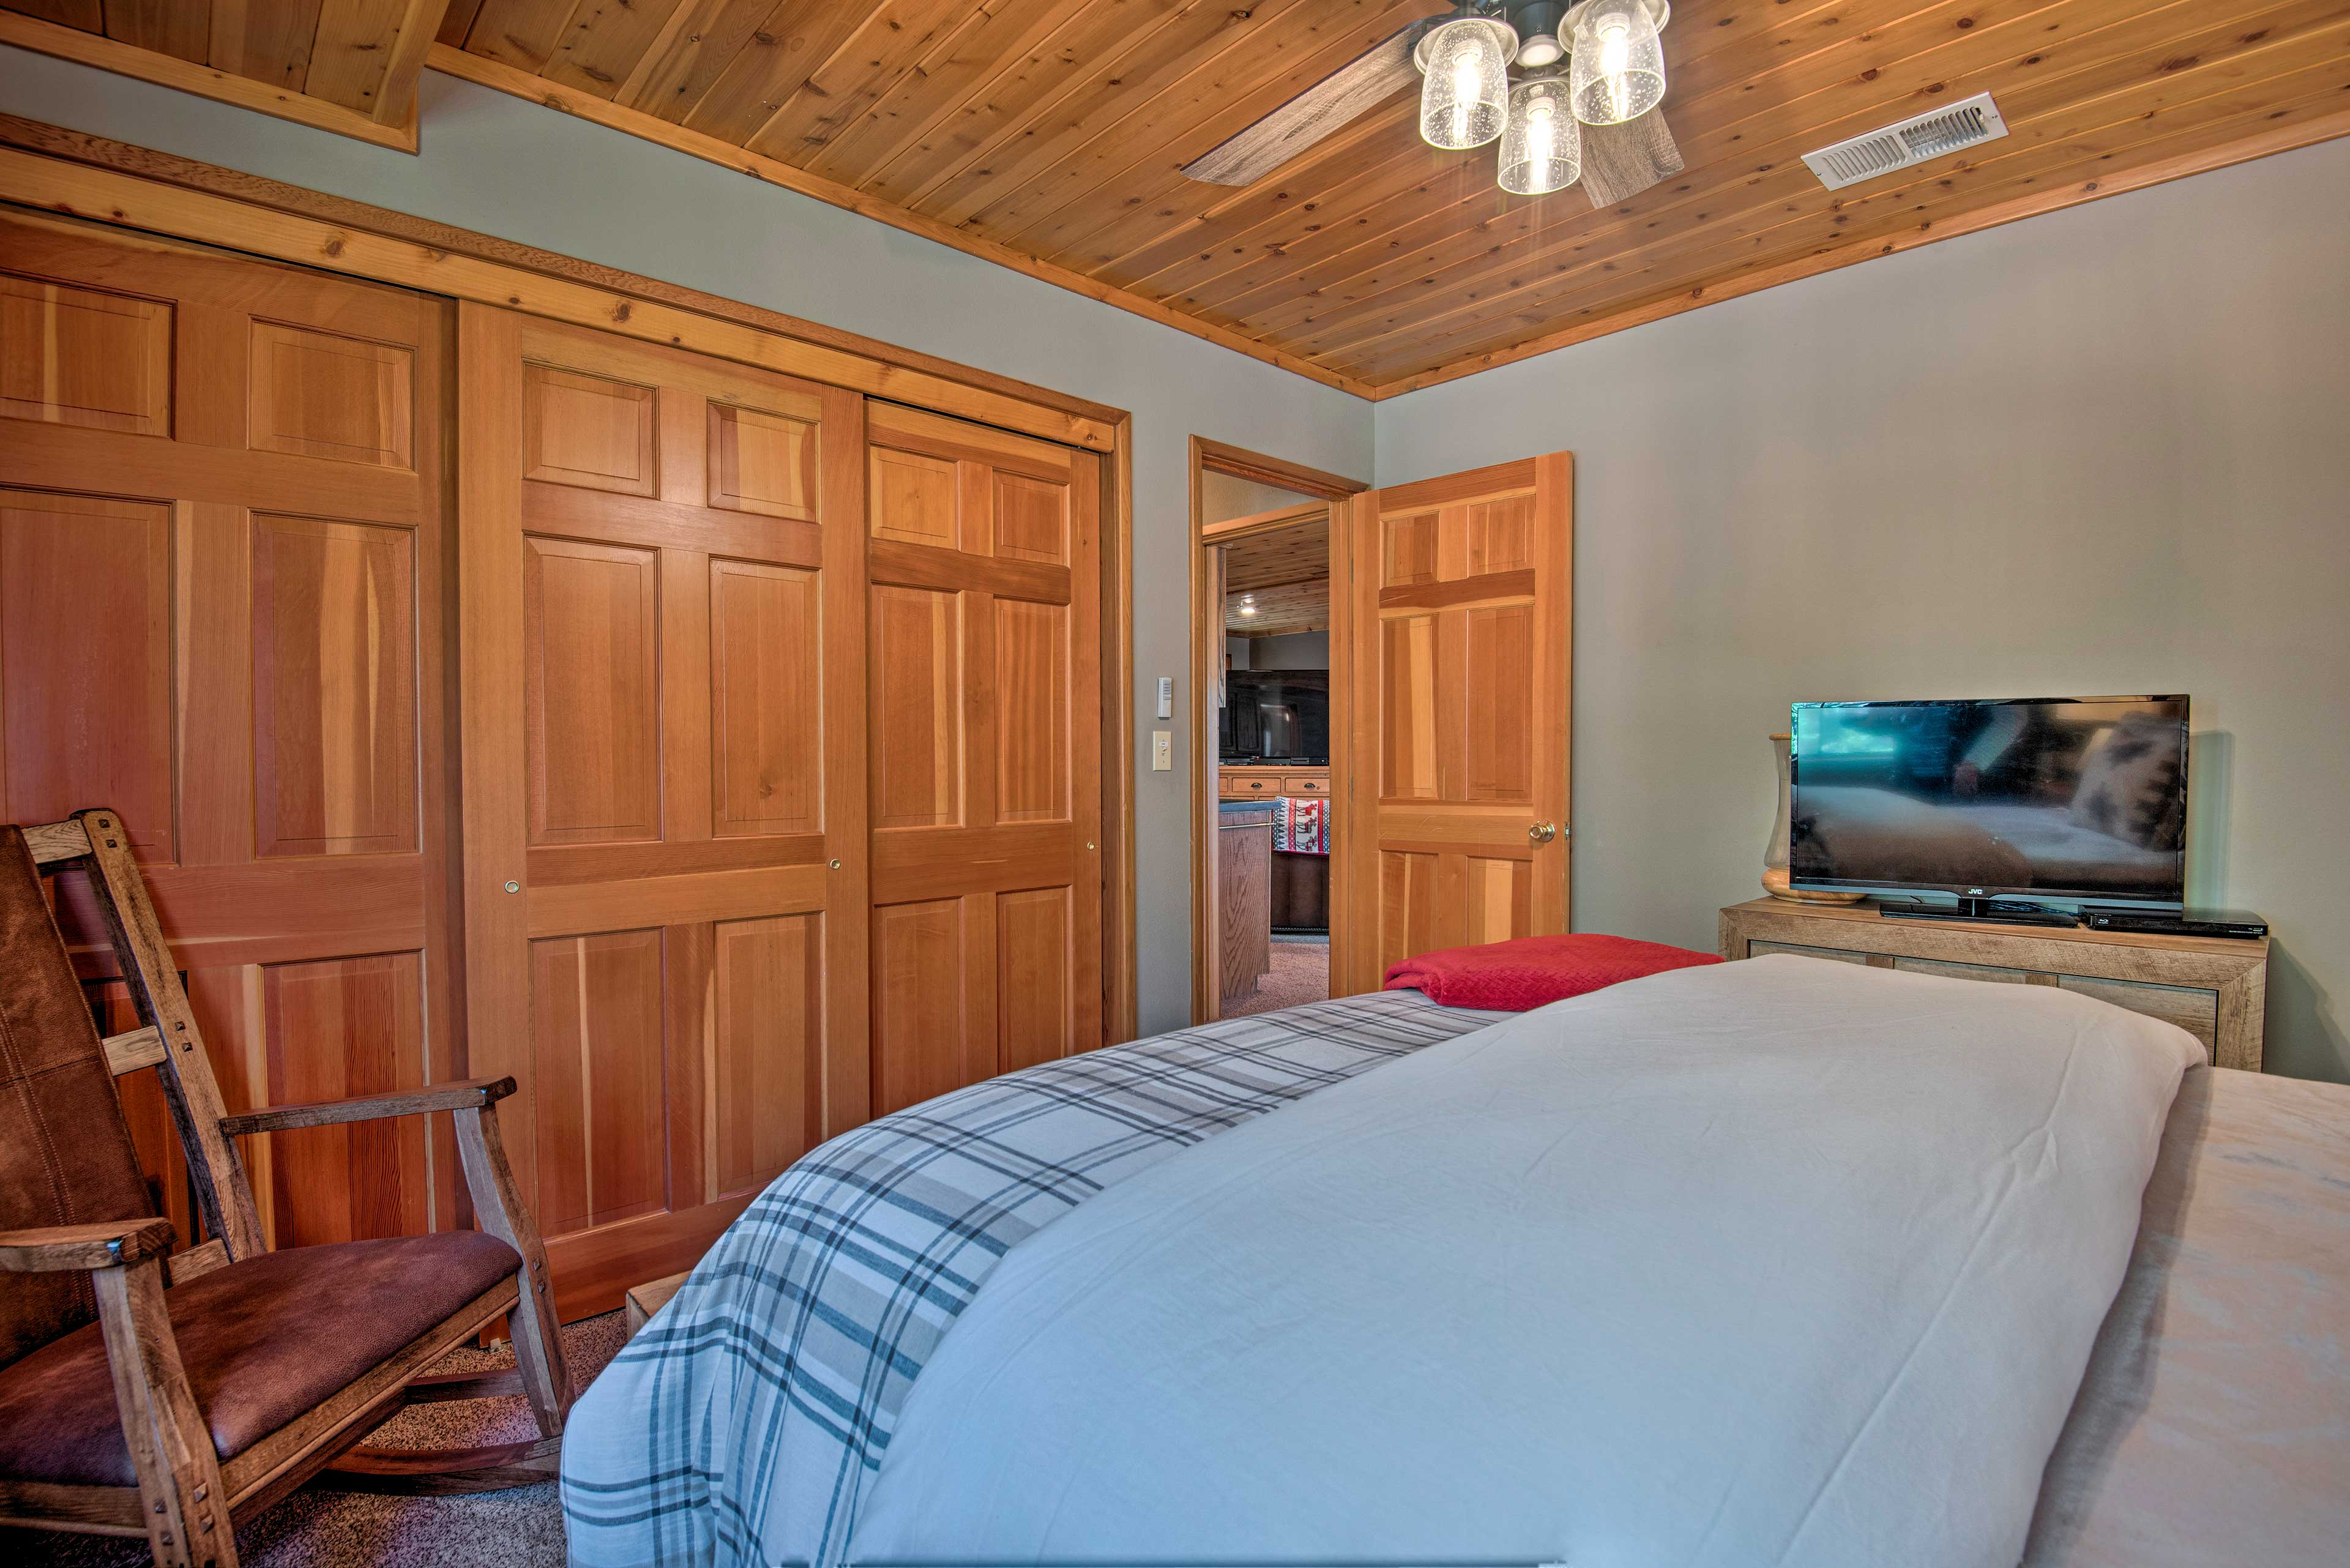 The master bedroom is complete with a flat-screen TV and spacious closet.